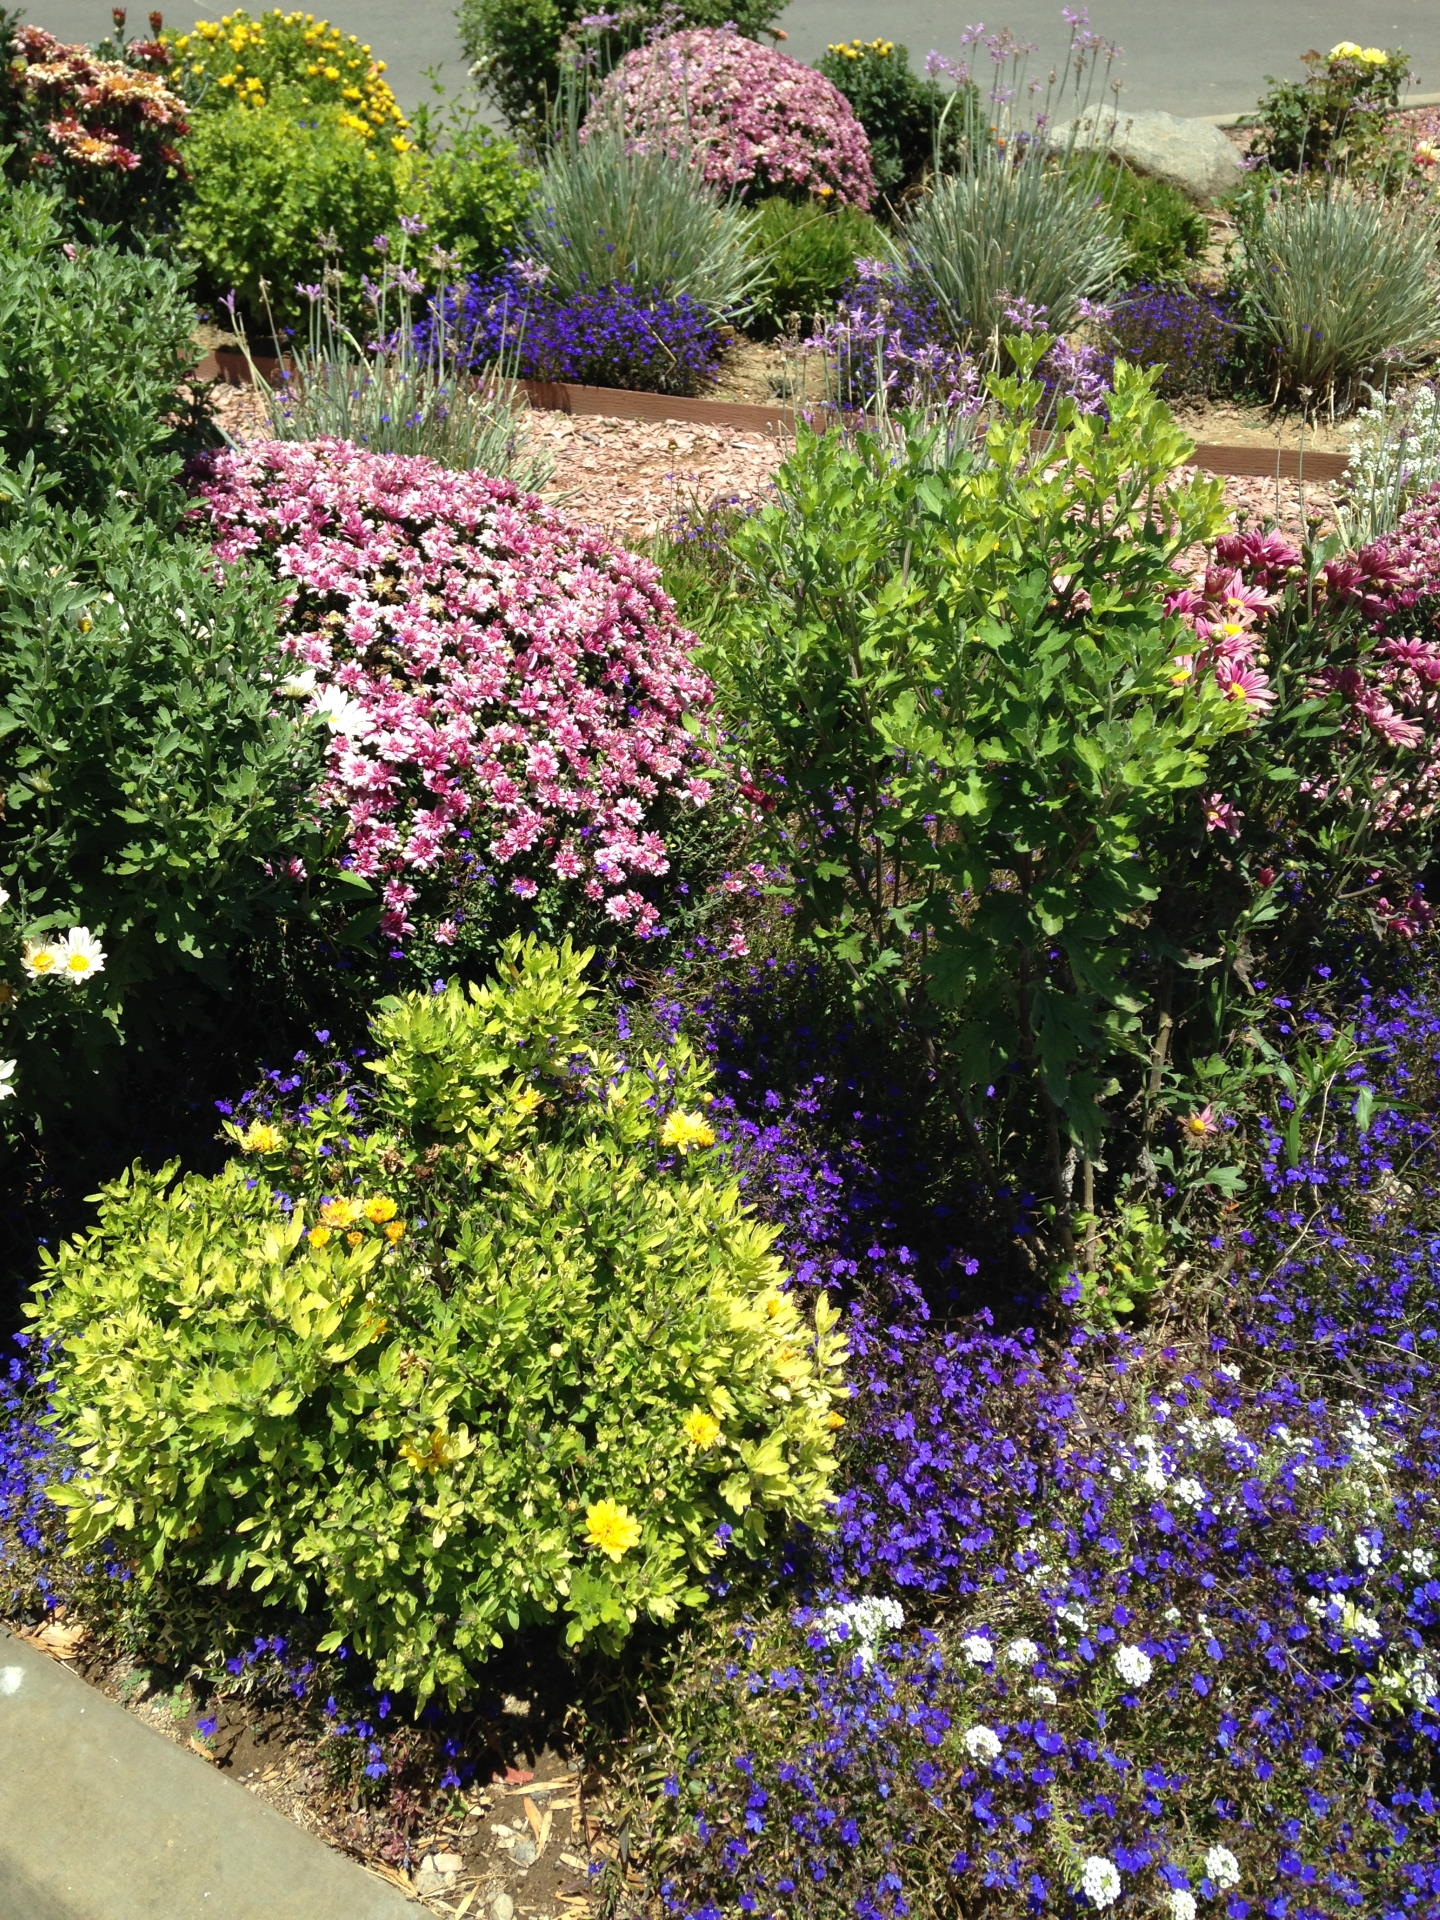 flowering bushes and plants